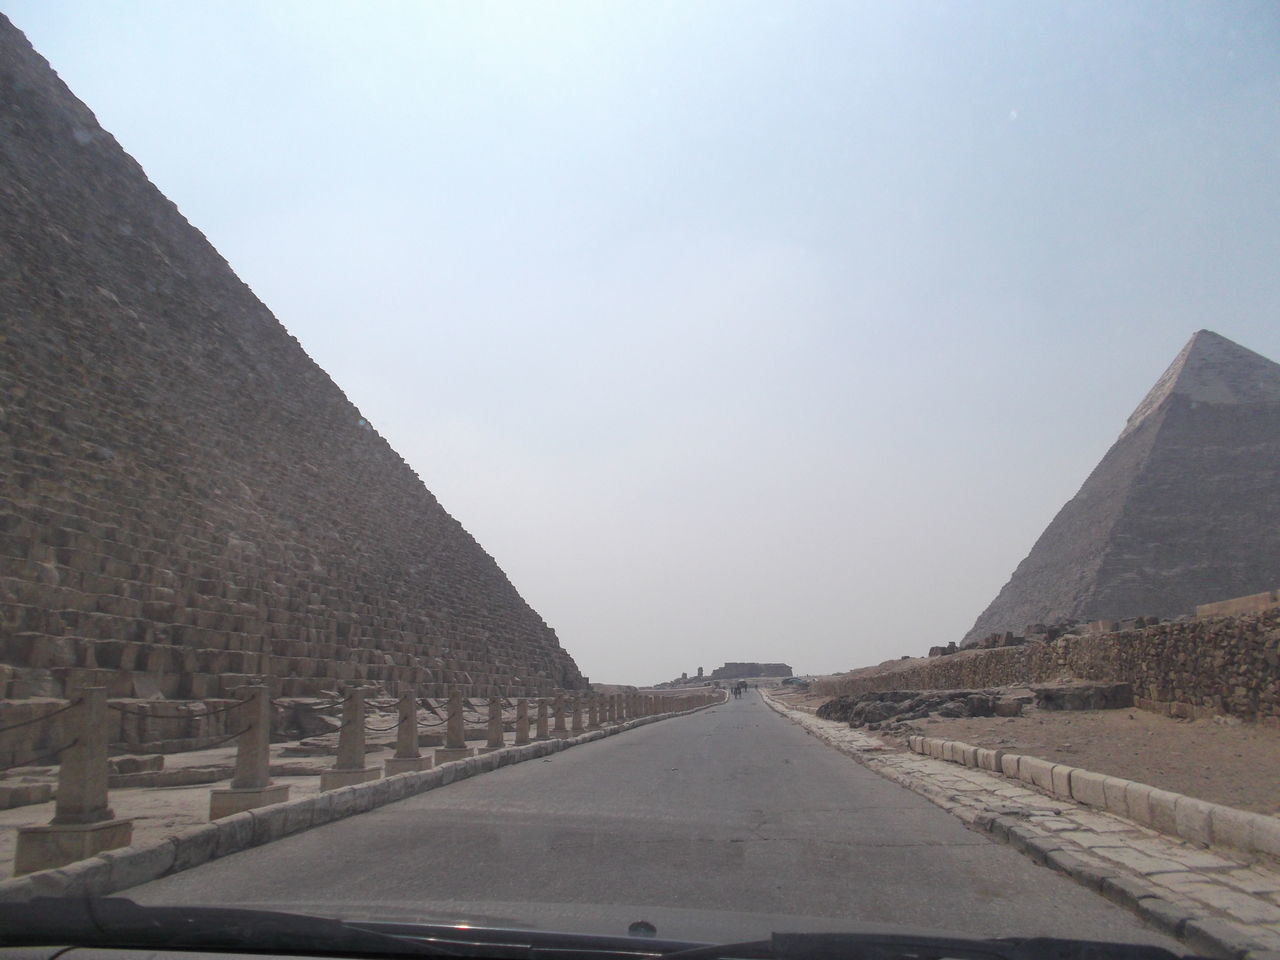 road, transportation, the way forward, travel, day, car, sky, travel destinations, clear sky, no people, built structure, architecture, car point of view, outdoors, pyramid, nature